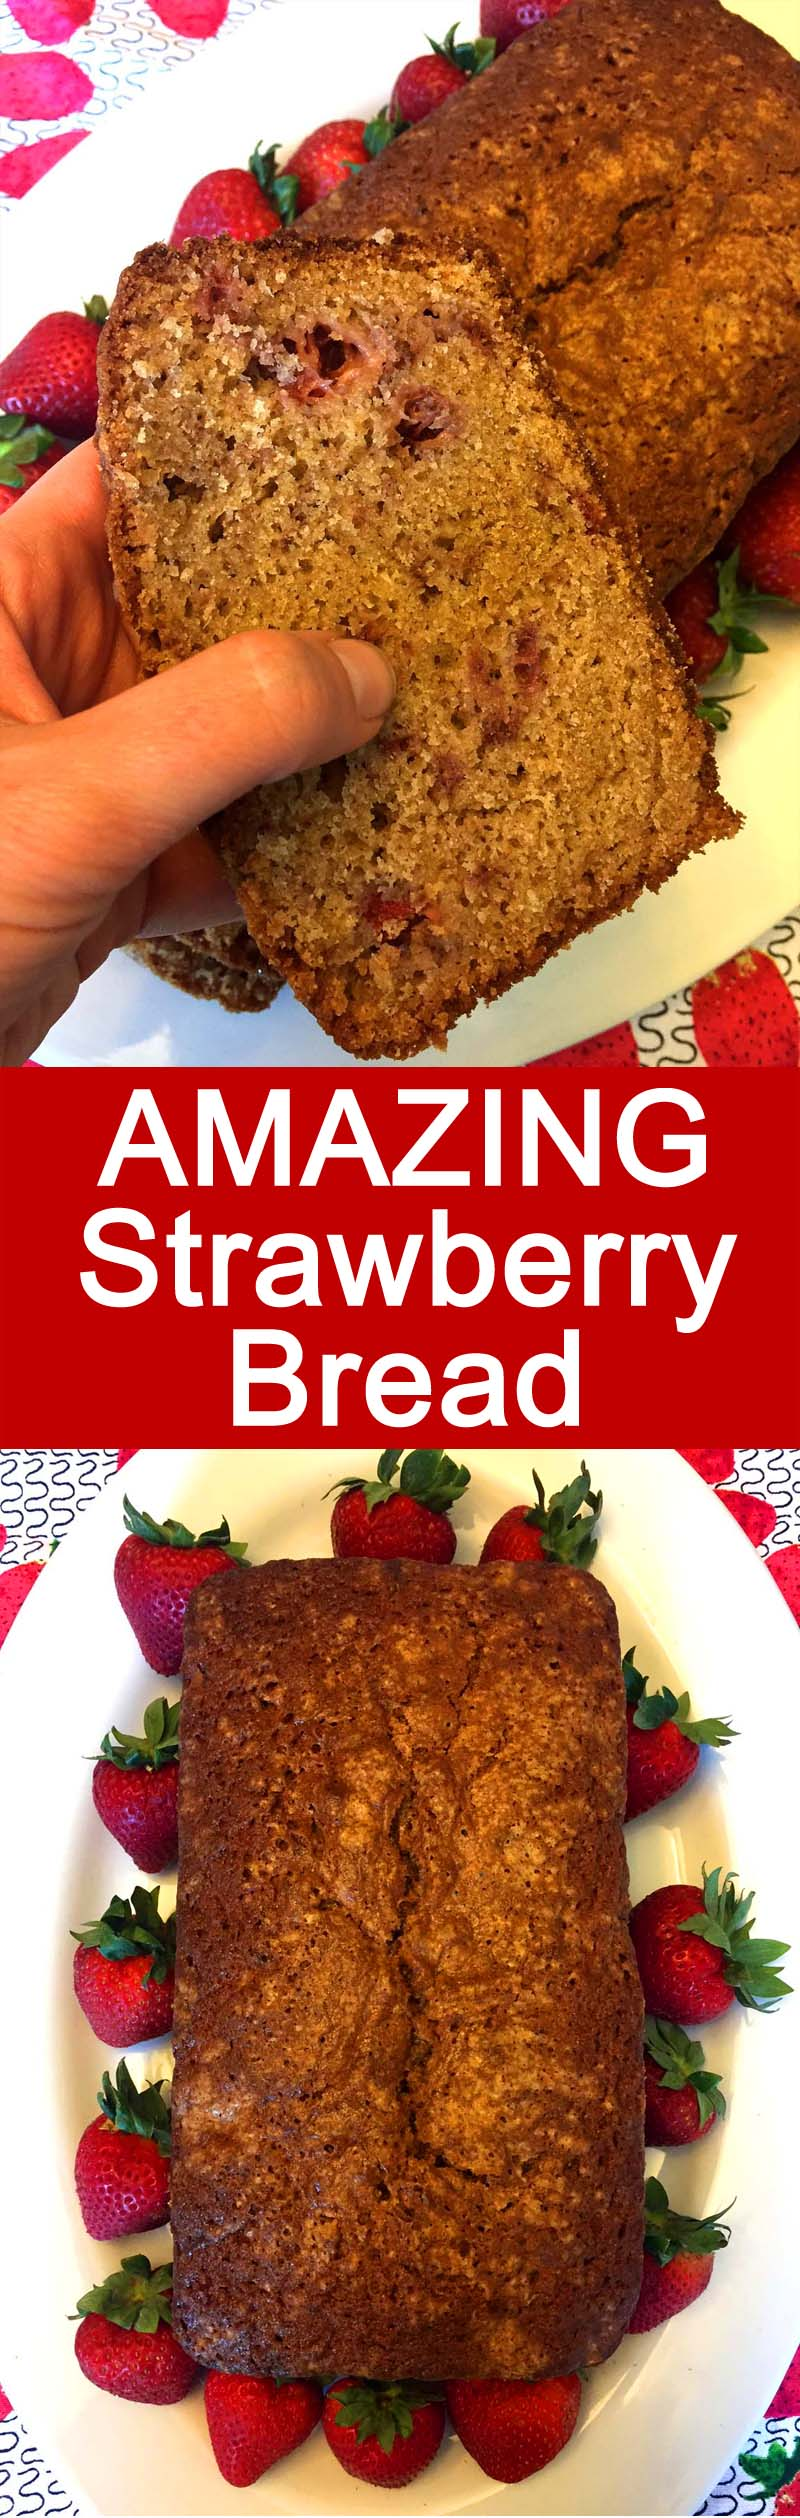 This homemade strawberry bread is amazing! Made with fresh strawberries and tastes so good! I love this strawberry bread for breakfast!